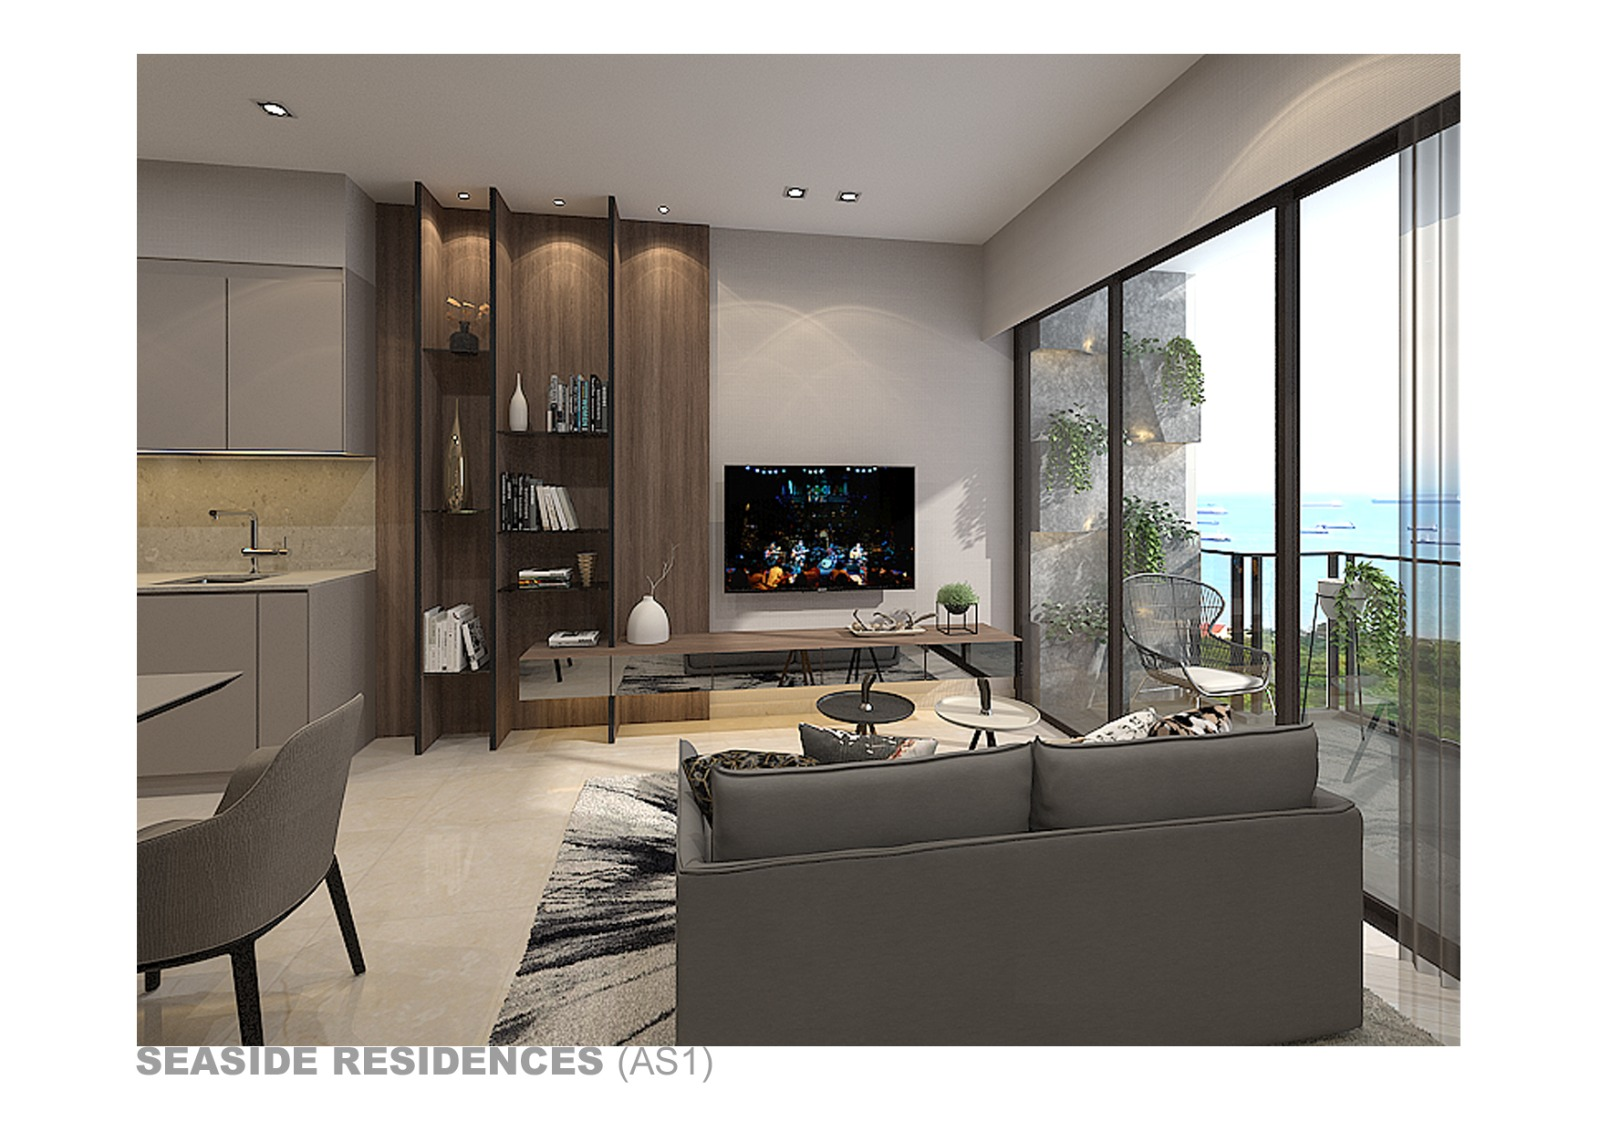 Seaside Residences image